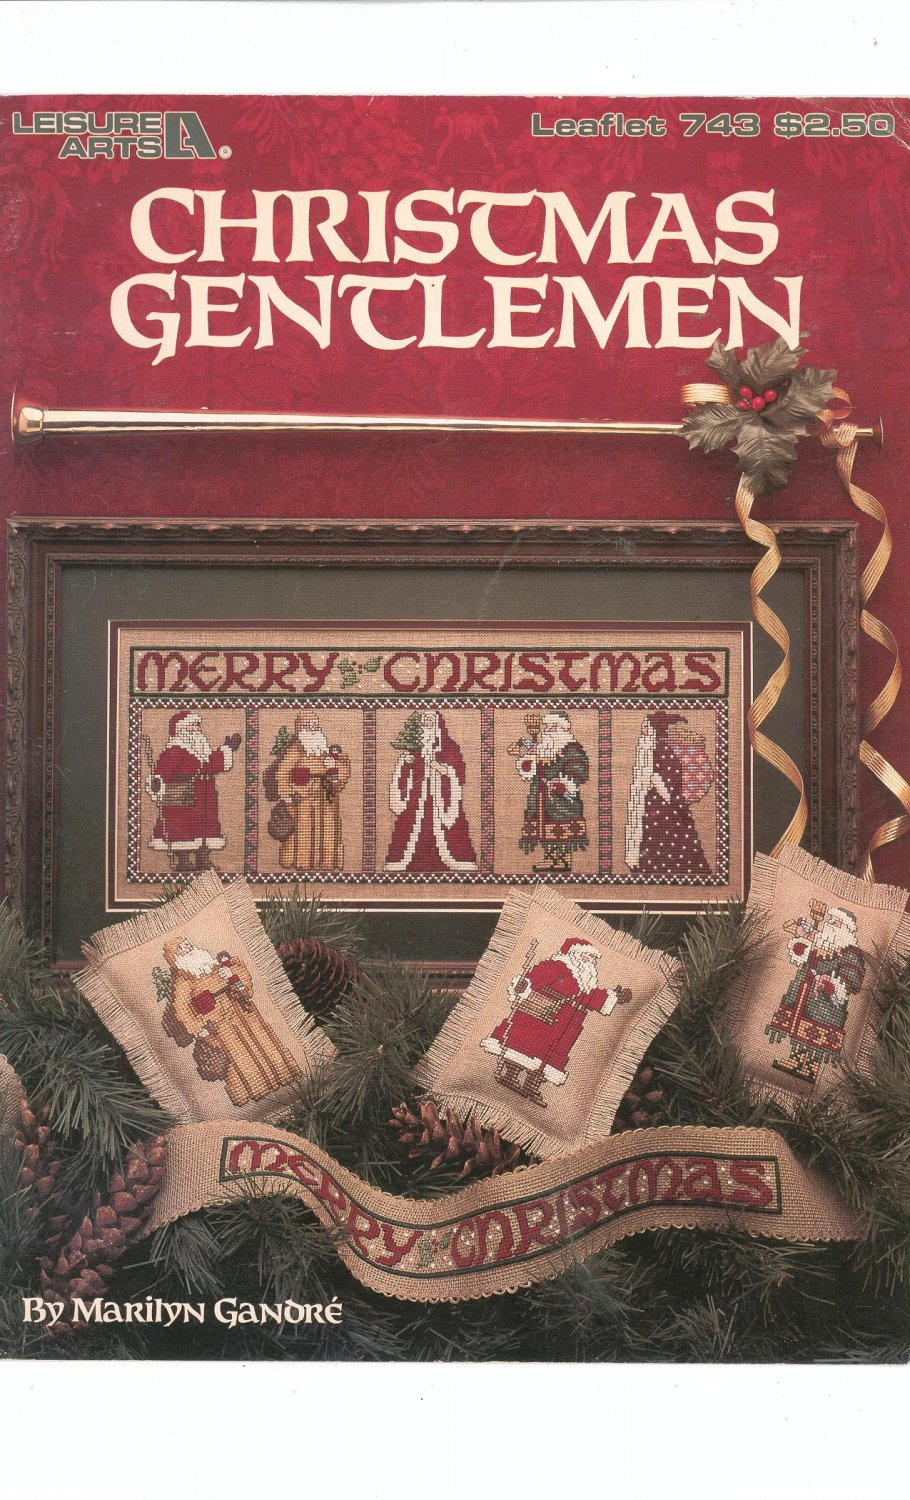 Christmas Gentlemen Cross Stitch by Marilyn Ganore Leisure Arts 743